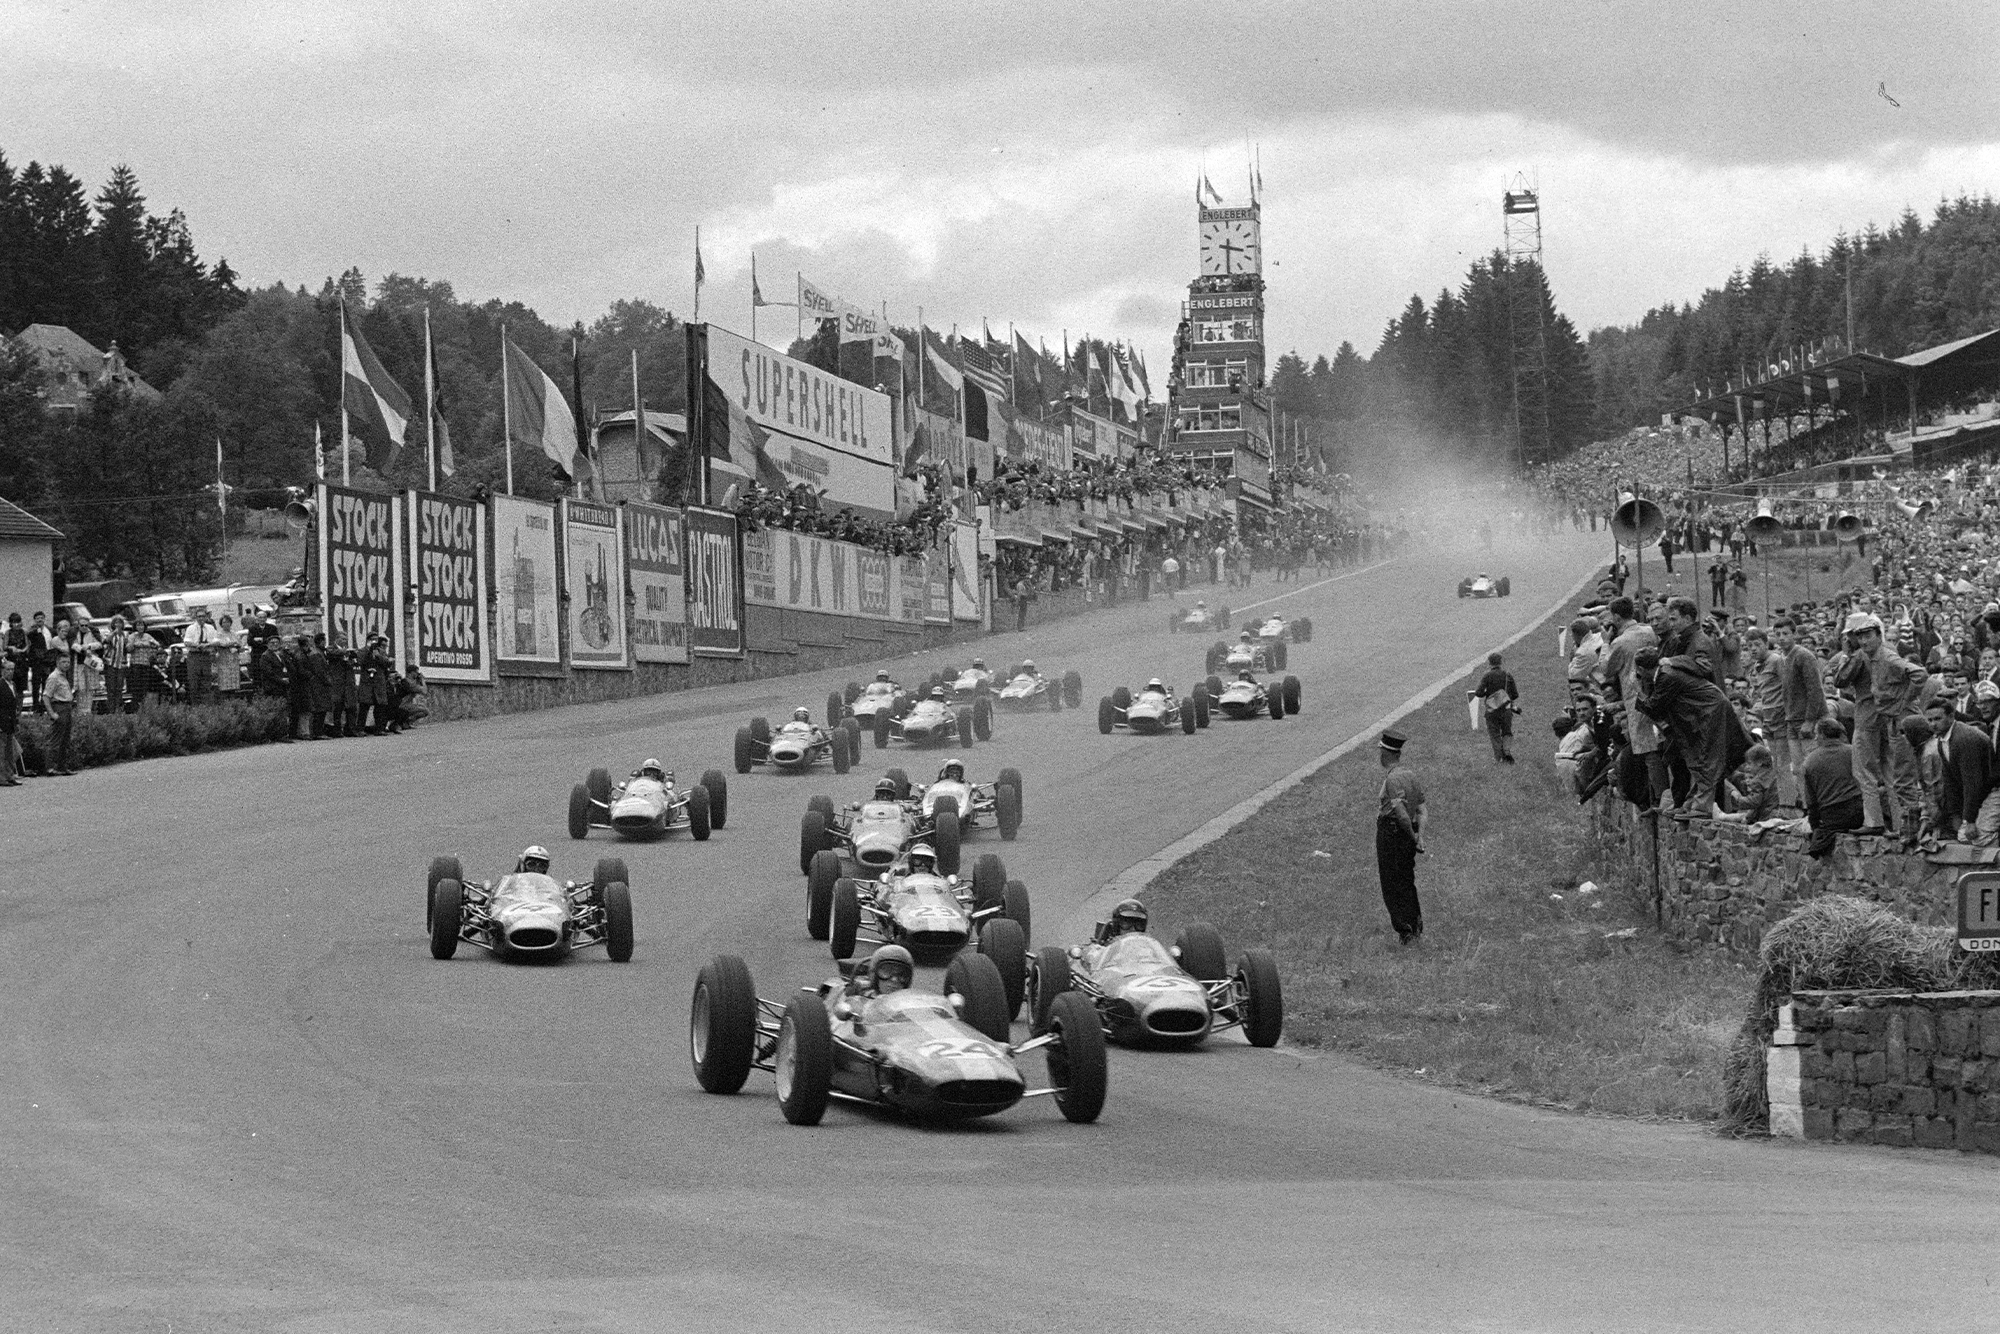 Peter Arundell, Lotus 25 Climax, leads into Eau Rouge at the start.